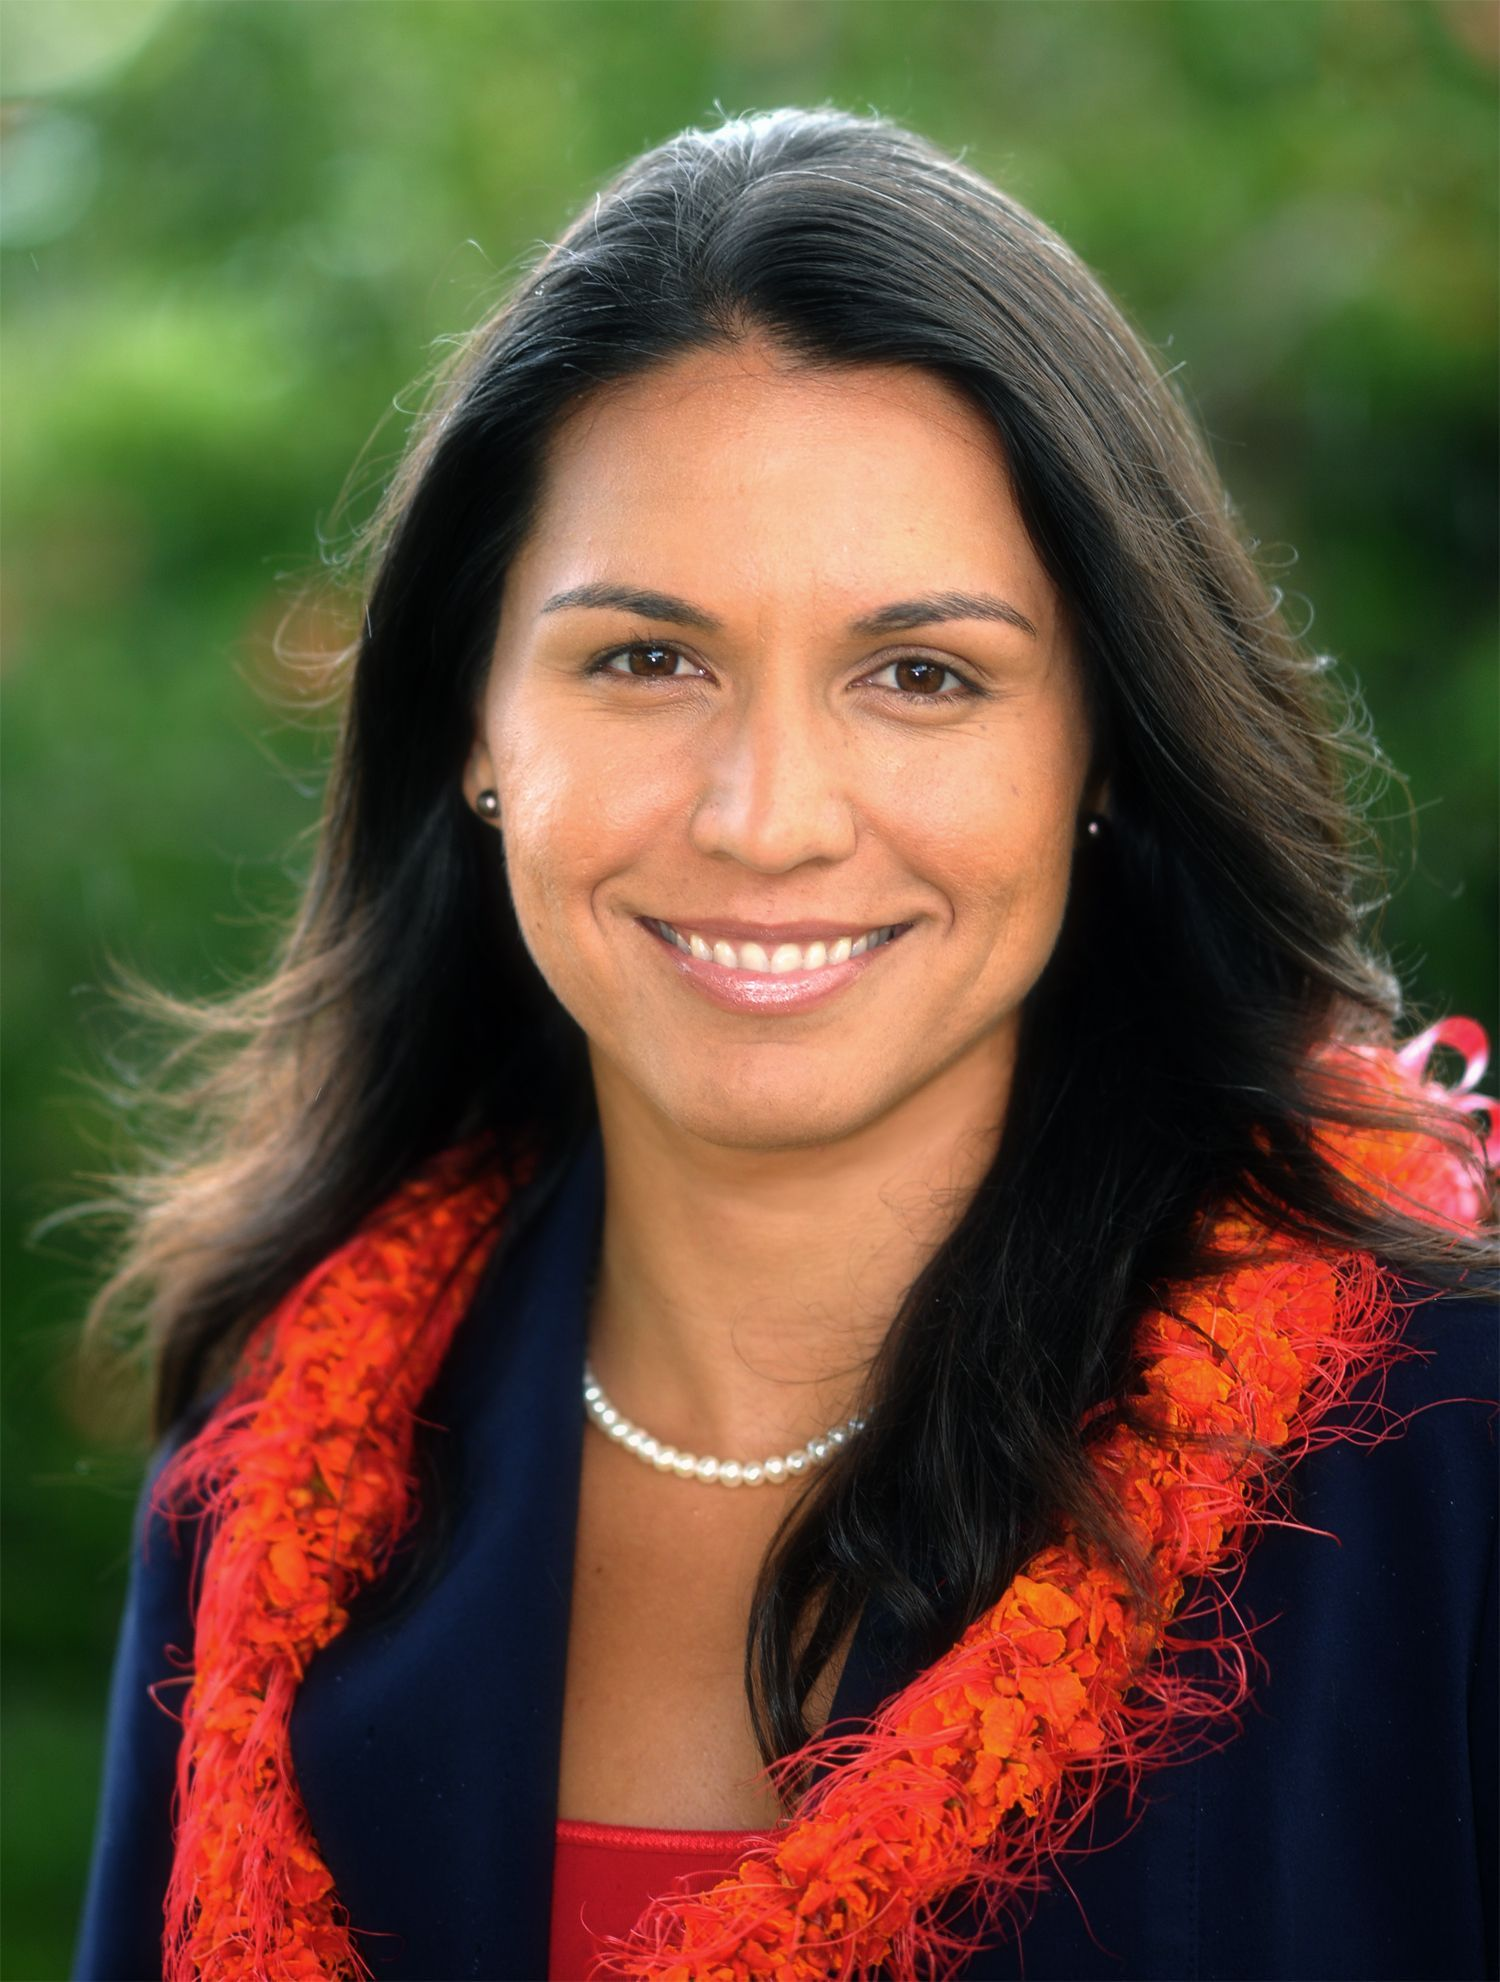 Image result for Hot images tulsi gabbard